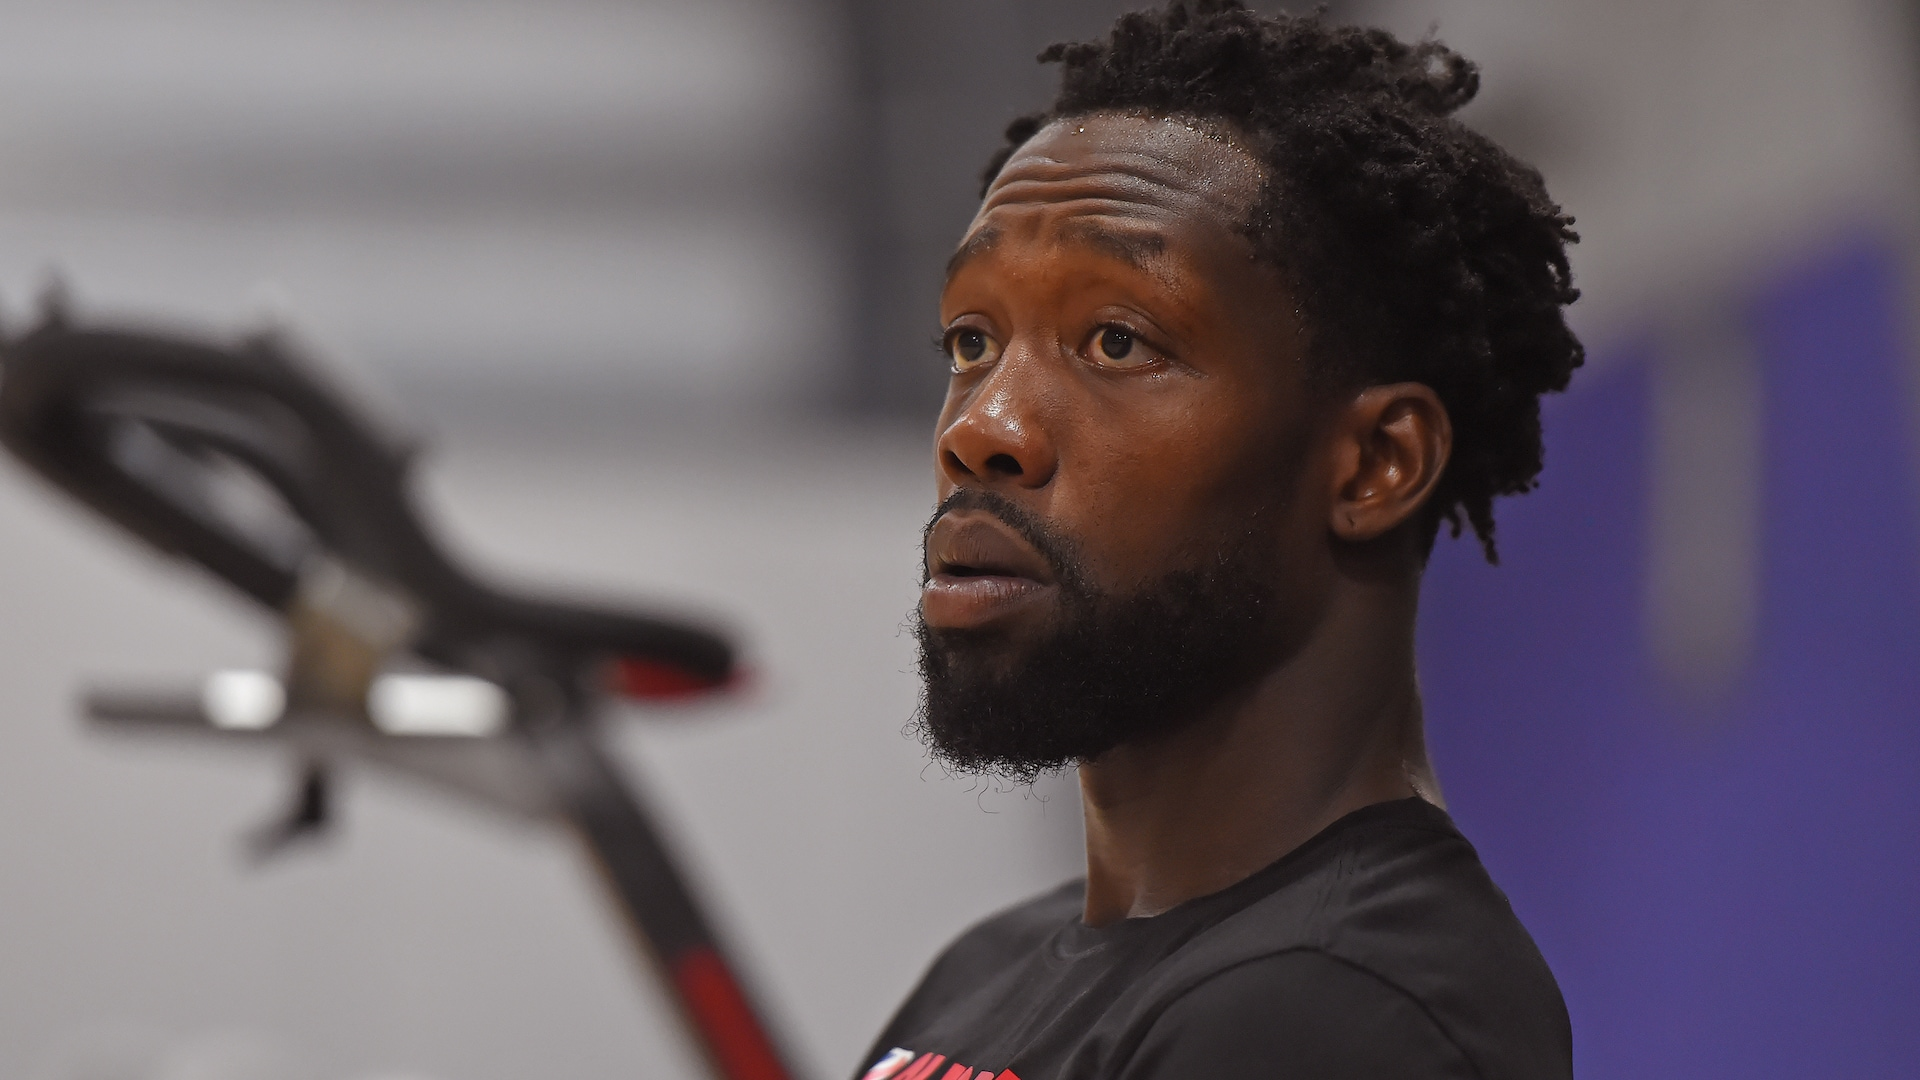 Clippers' Patrick Beverley fined $25,000 for verbal abuse of official